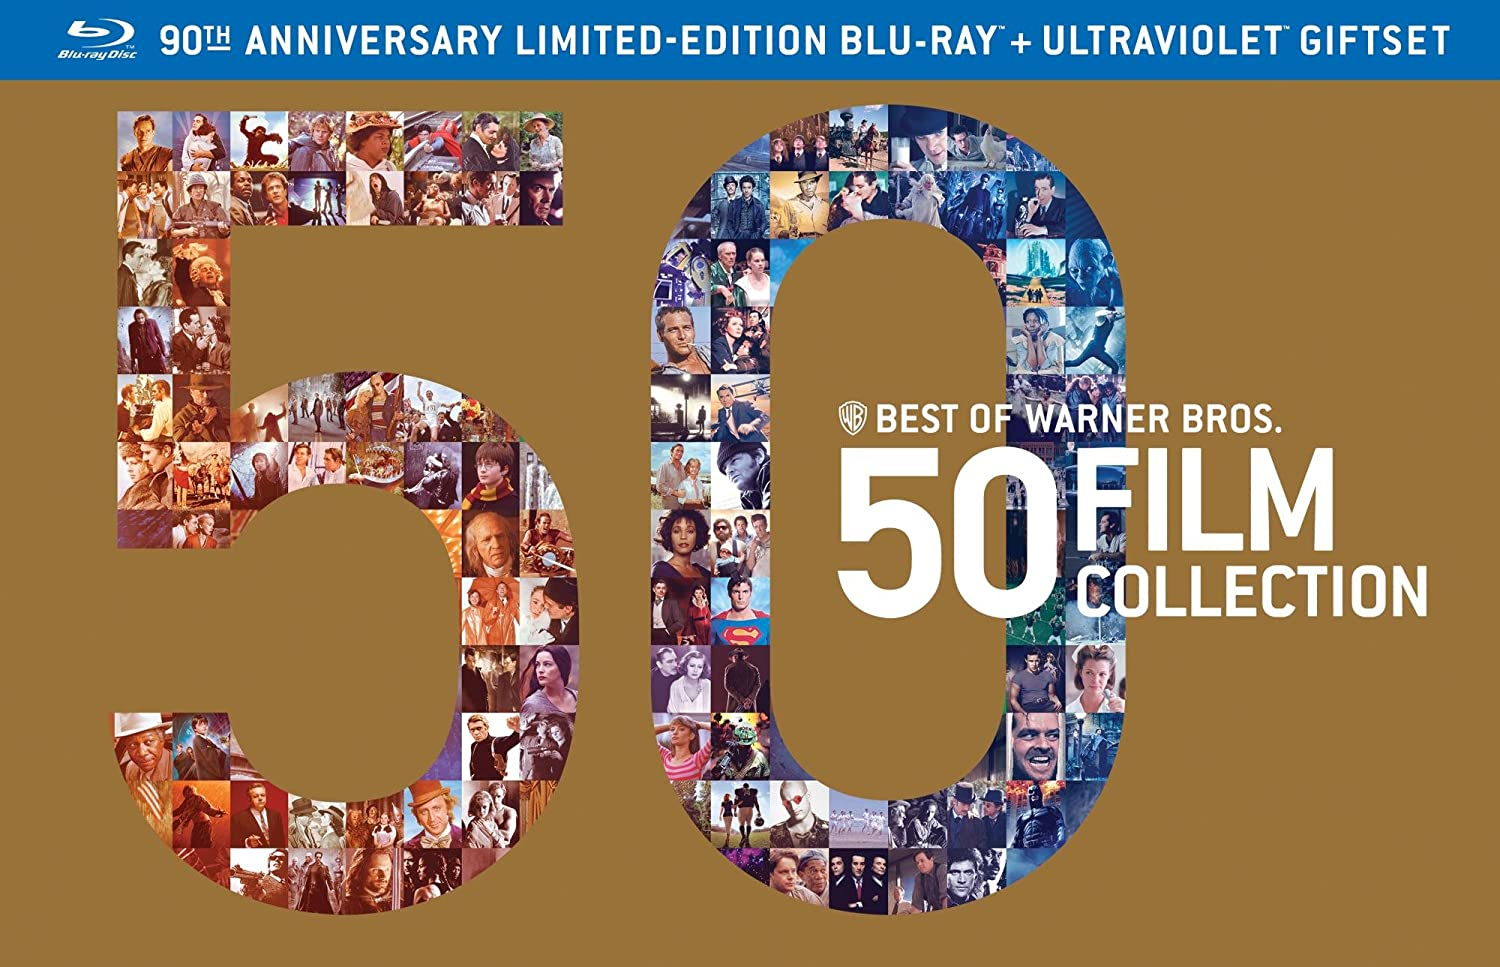 Best of Warner Bros: 50 Film Collection